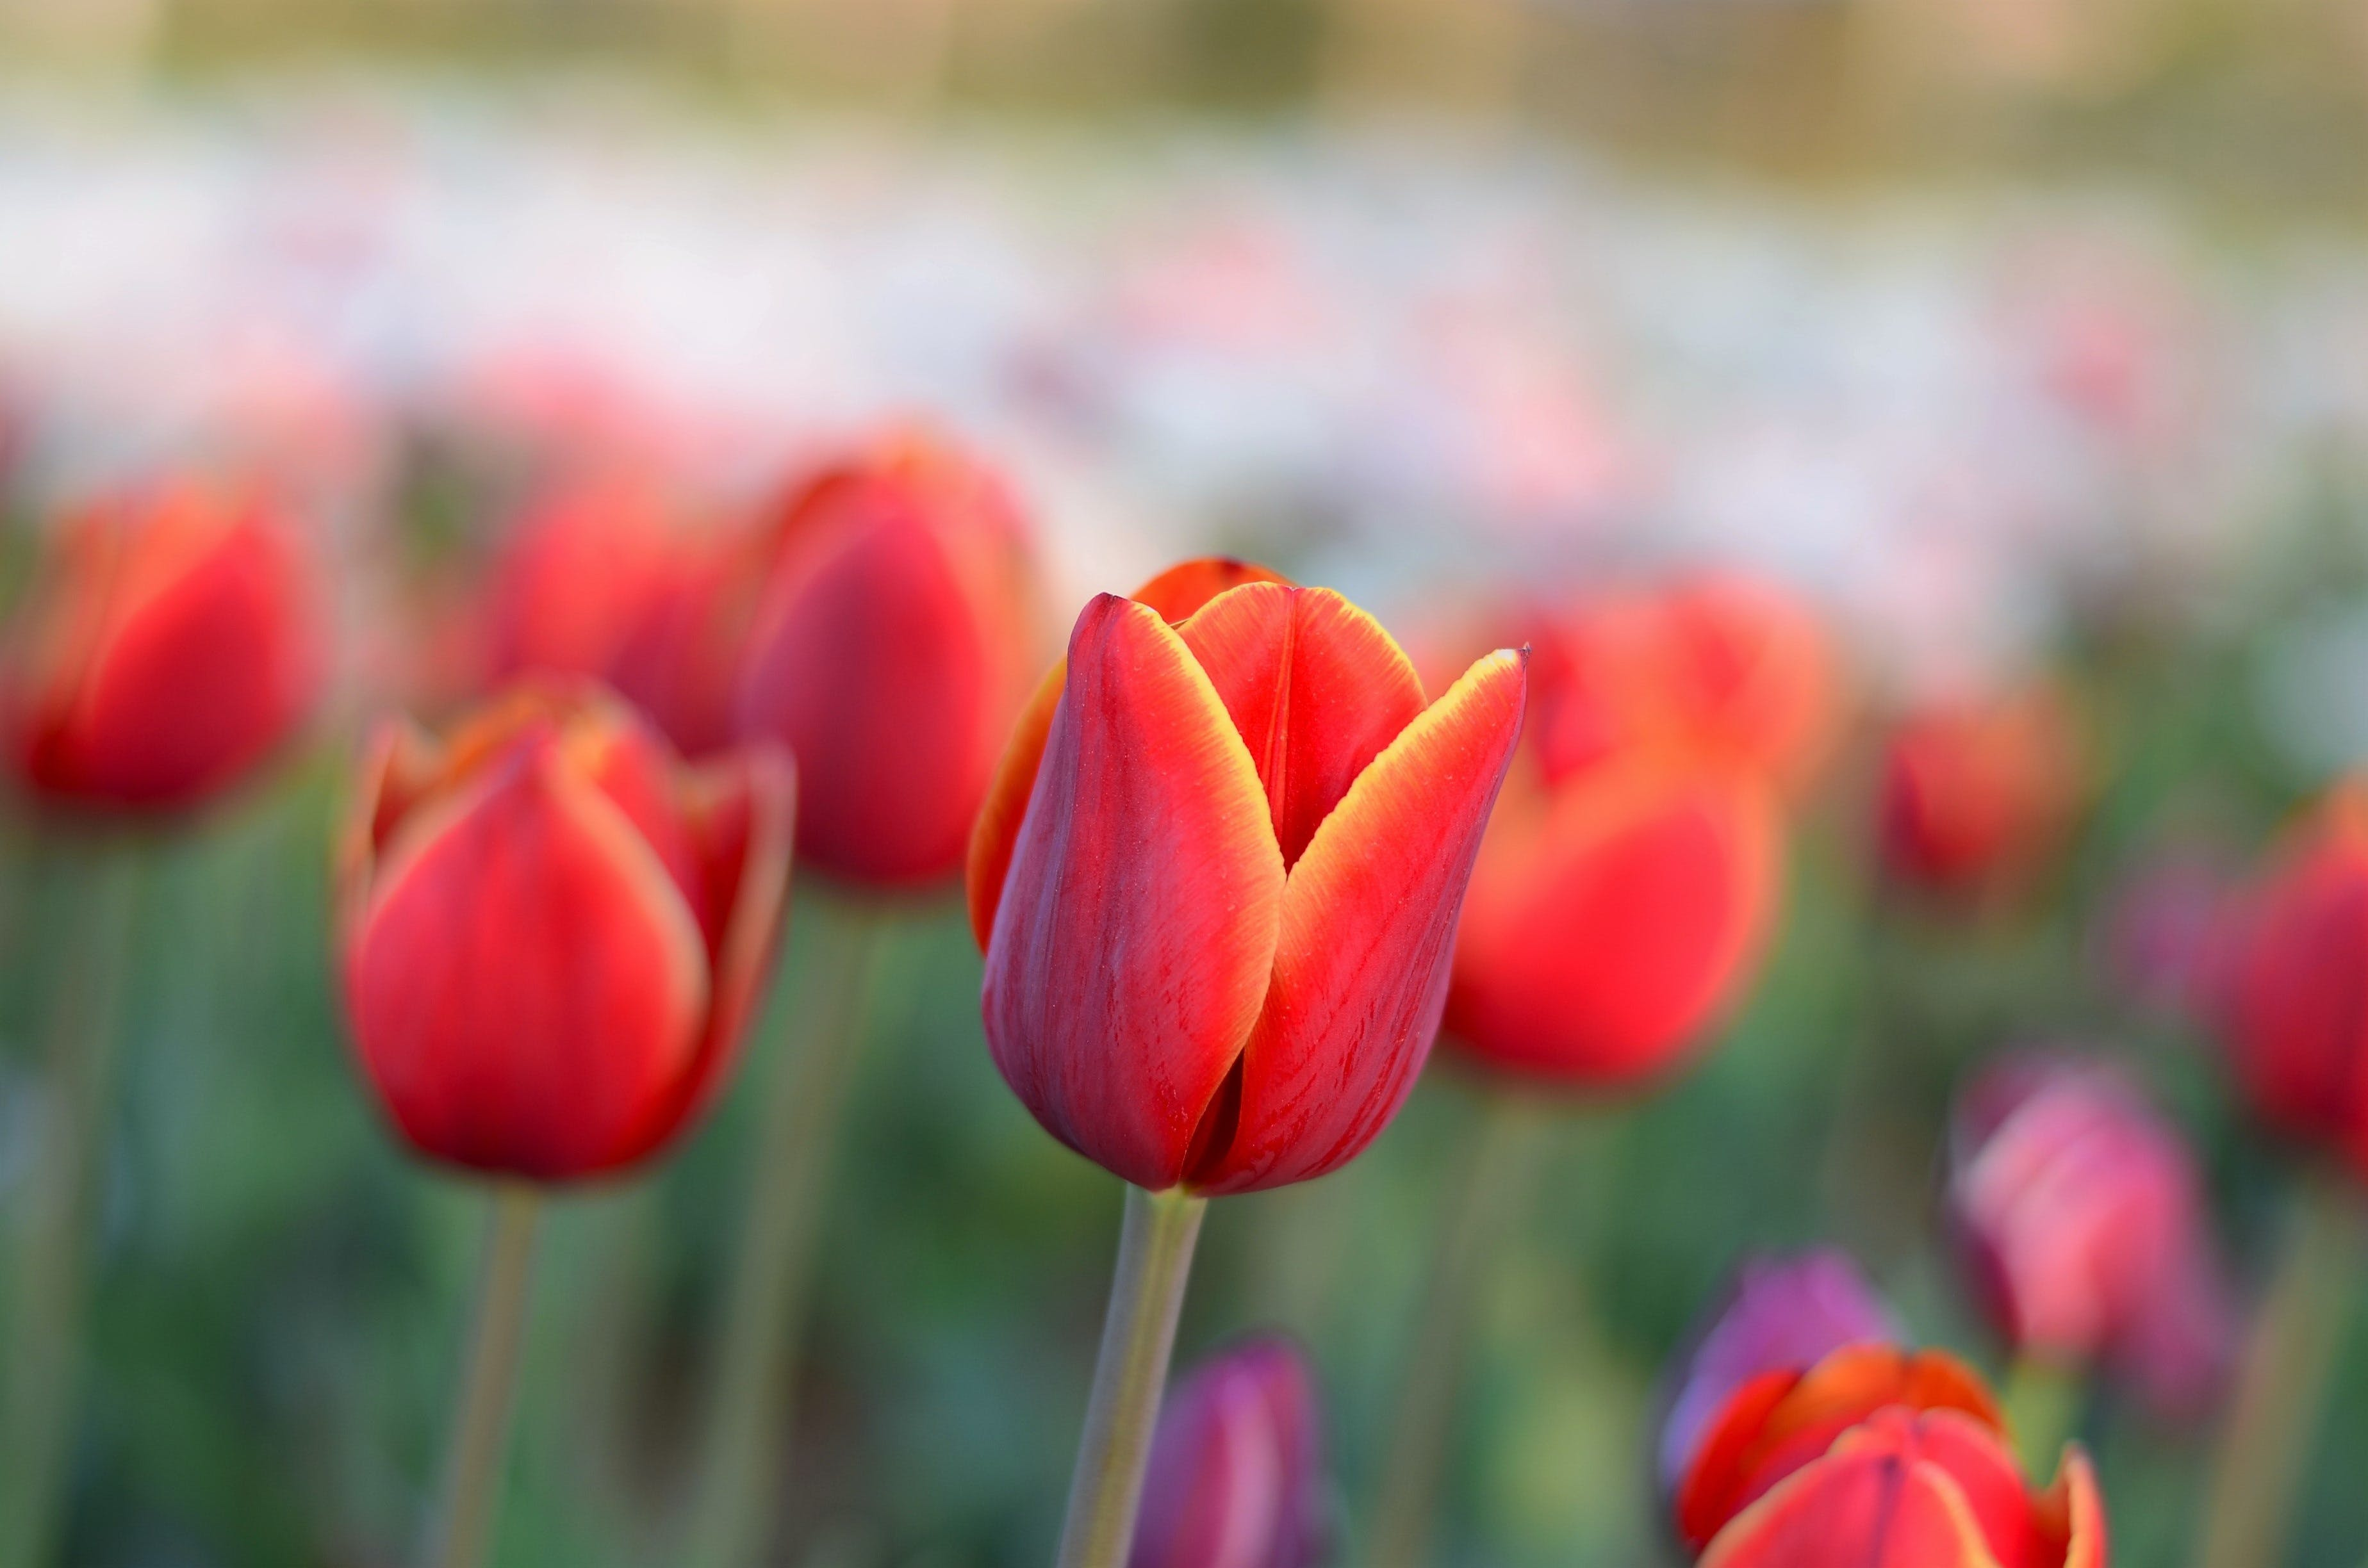 Selective Focus Photography of Red Tulips